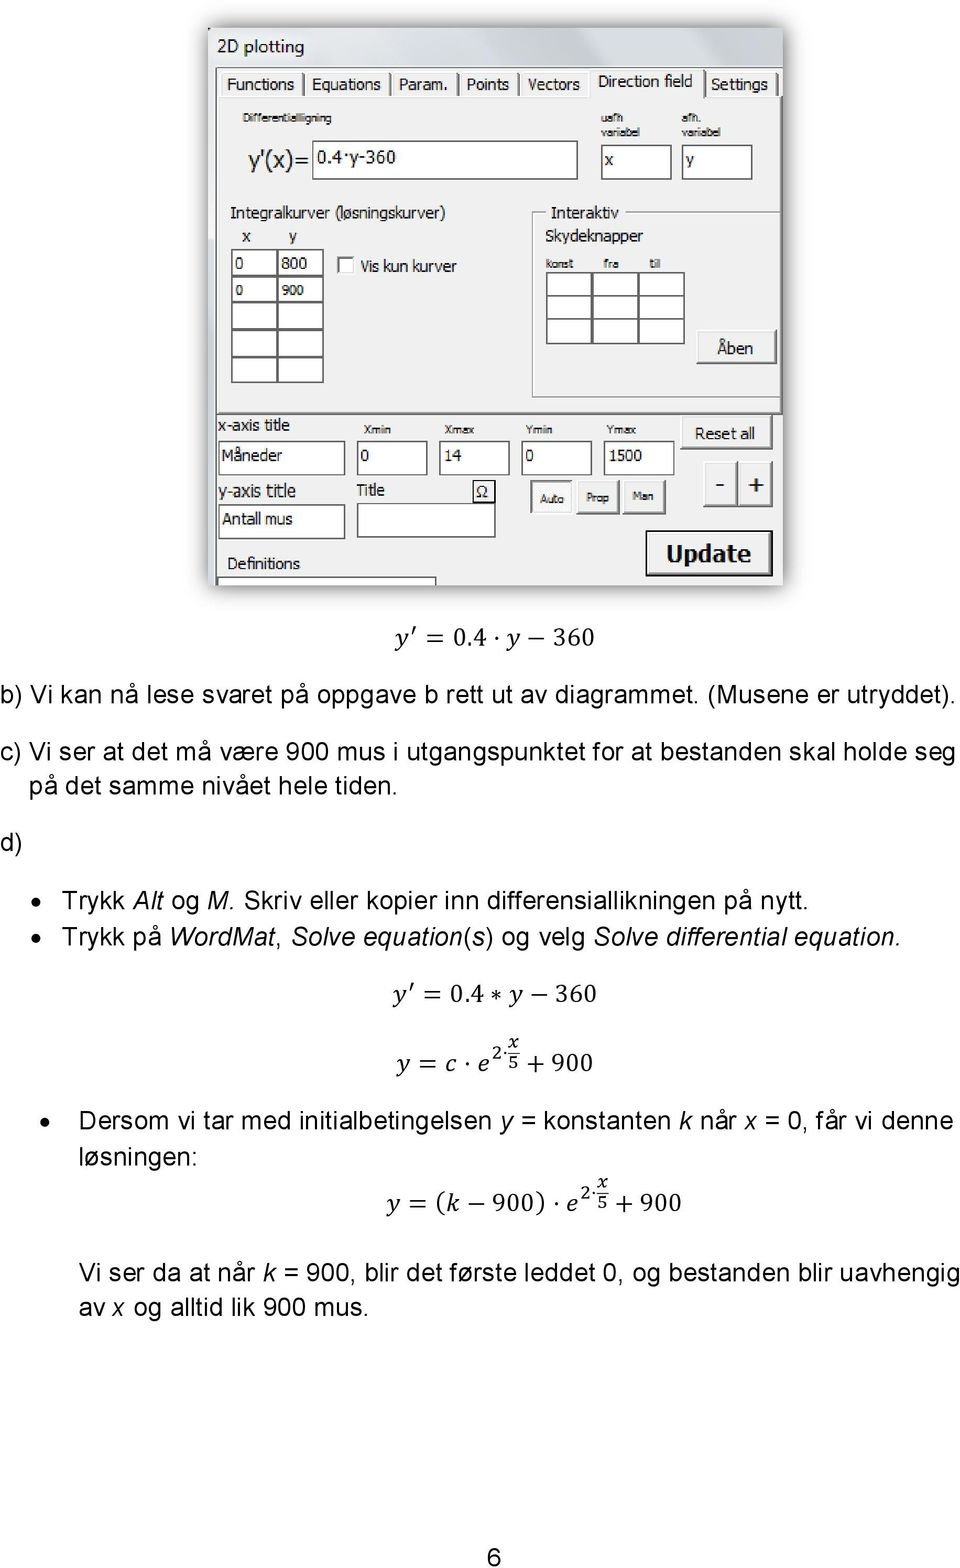 Skriv eller kopier inn differensiallikningen på nytt. Trykk på WordMat, Solve equation(s) og velg Solve differential equation.